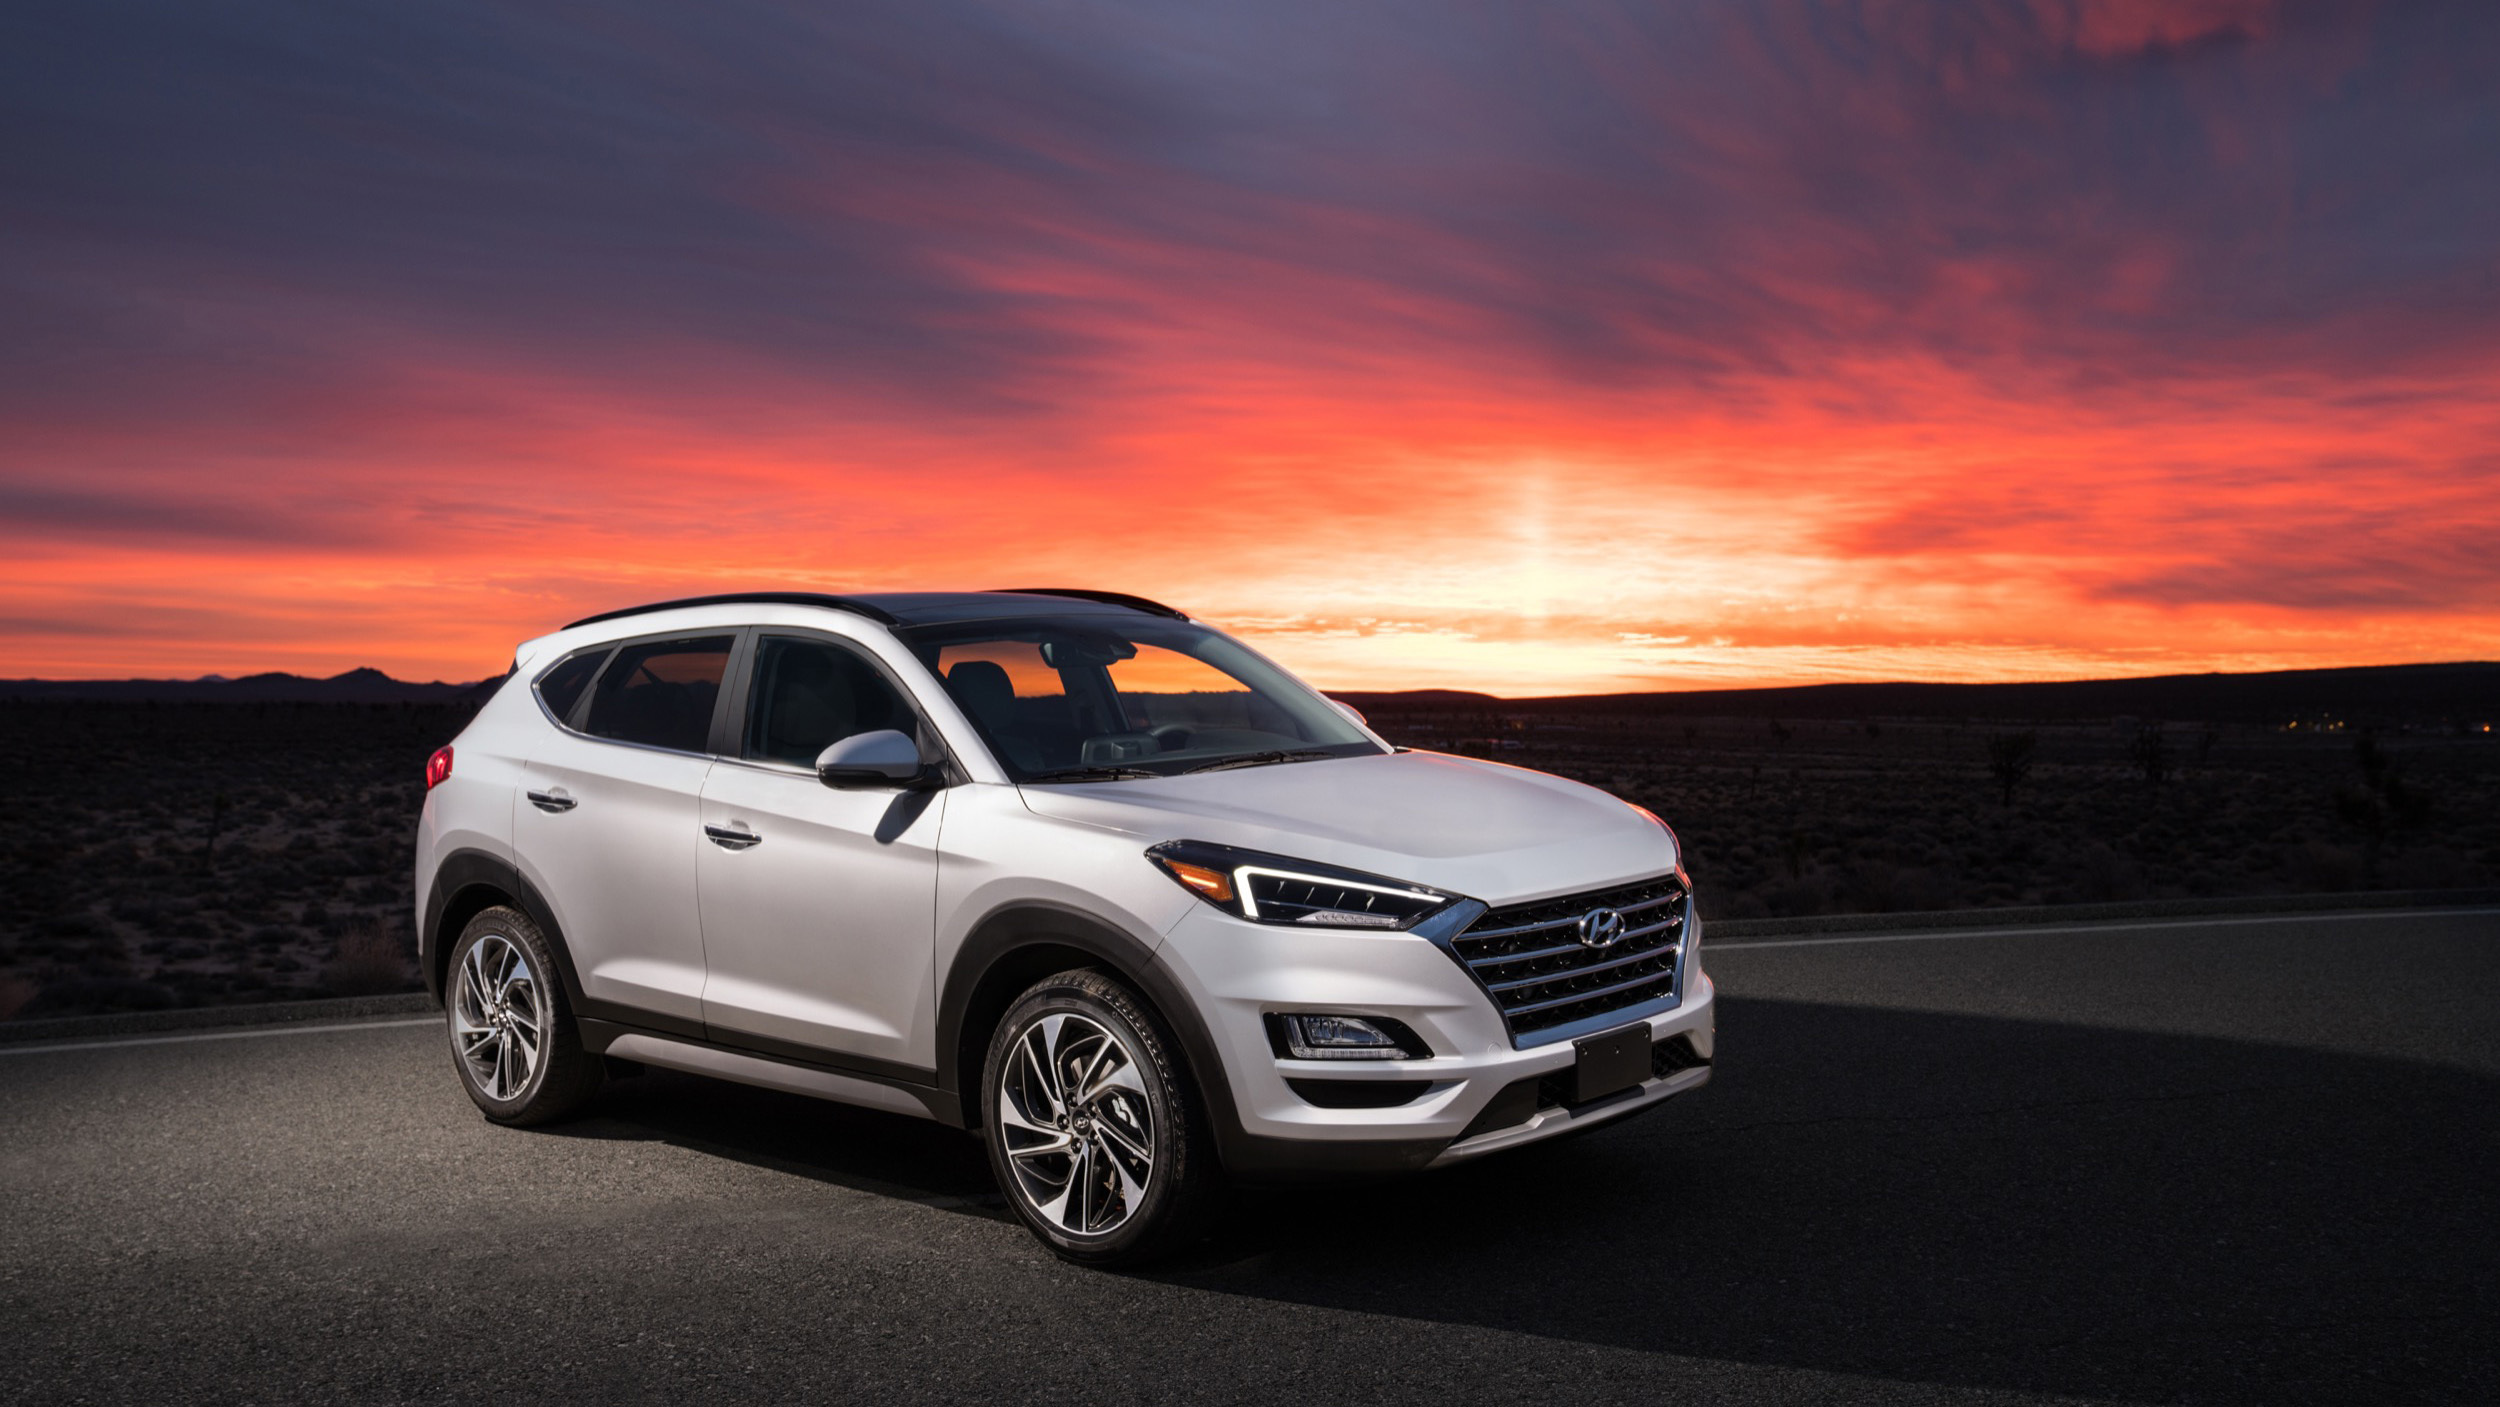 Tucson New Years Eve 2020 2020 Hyundai Tucson Reviews | Price, specs, features and photos